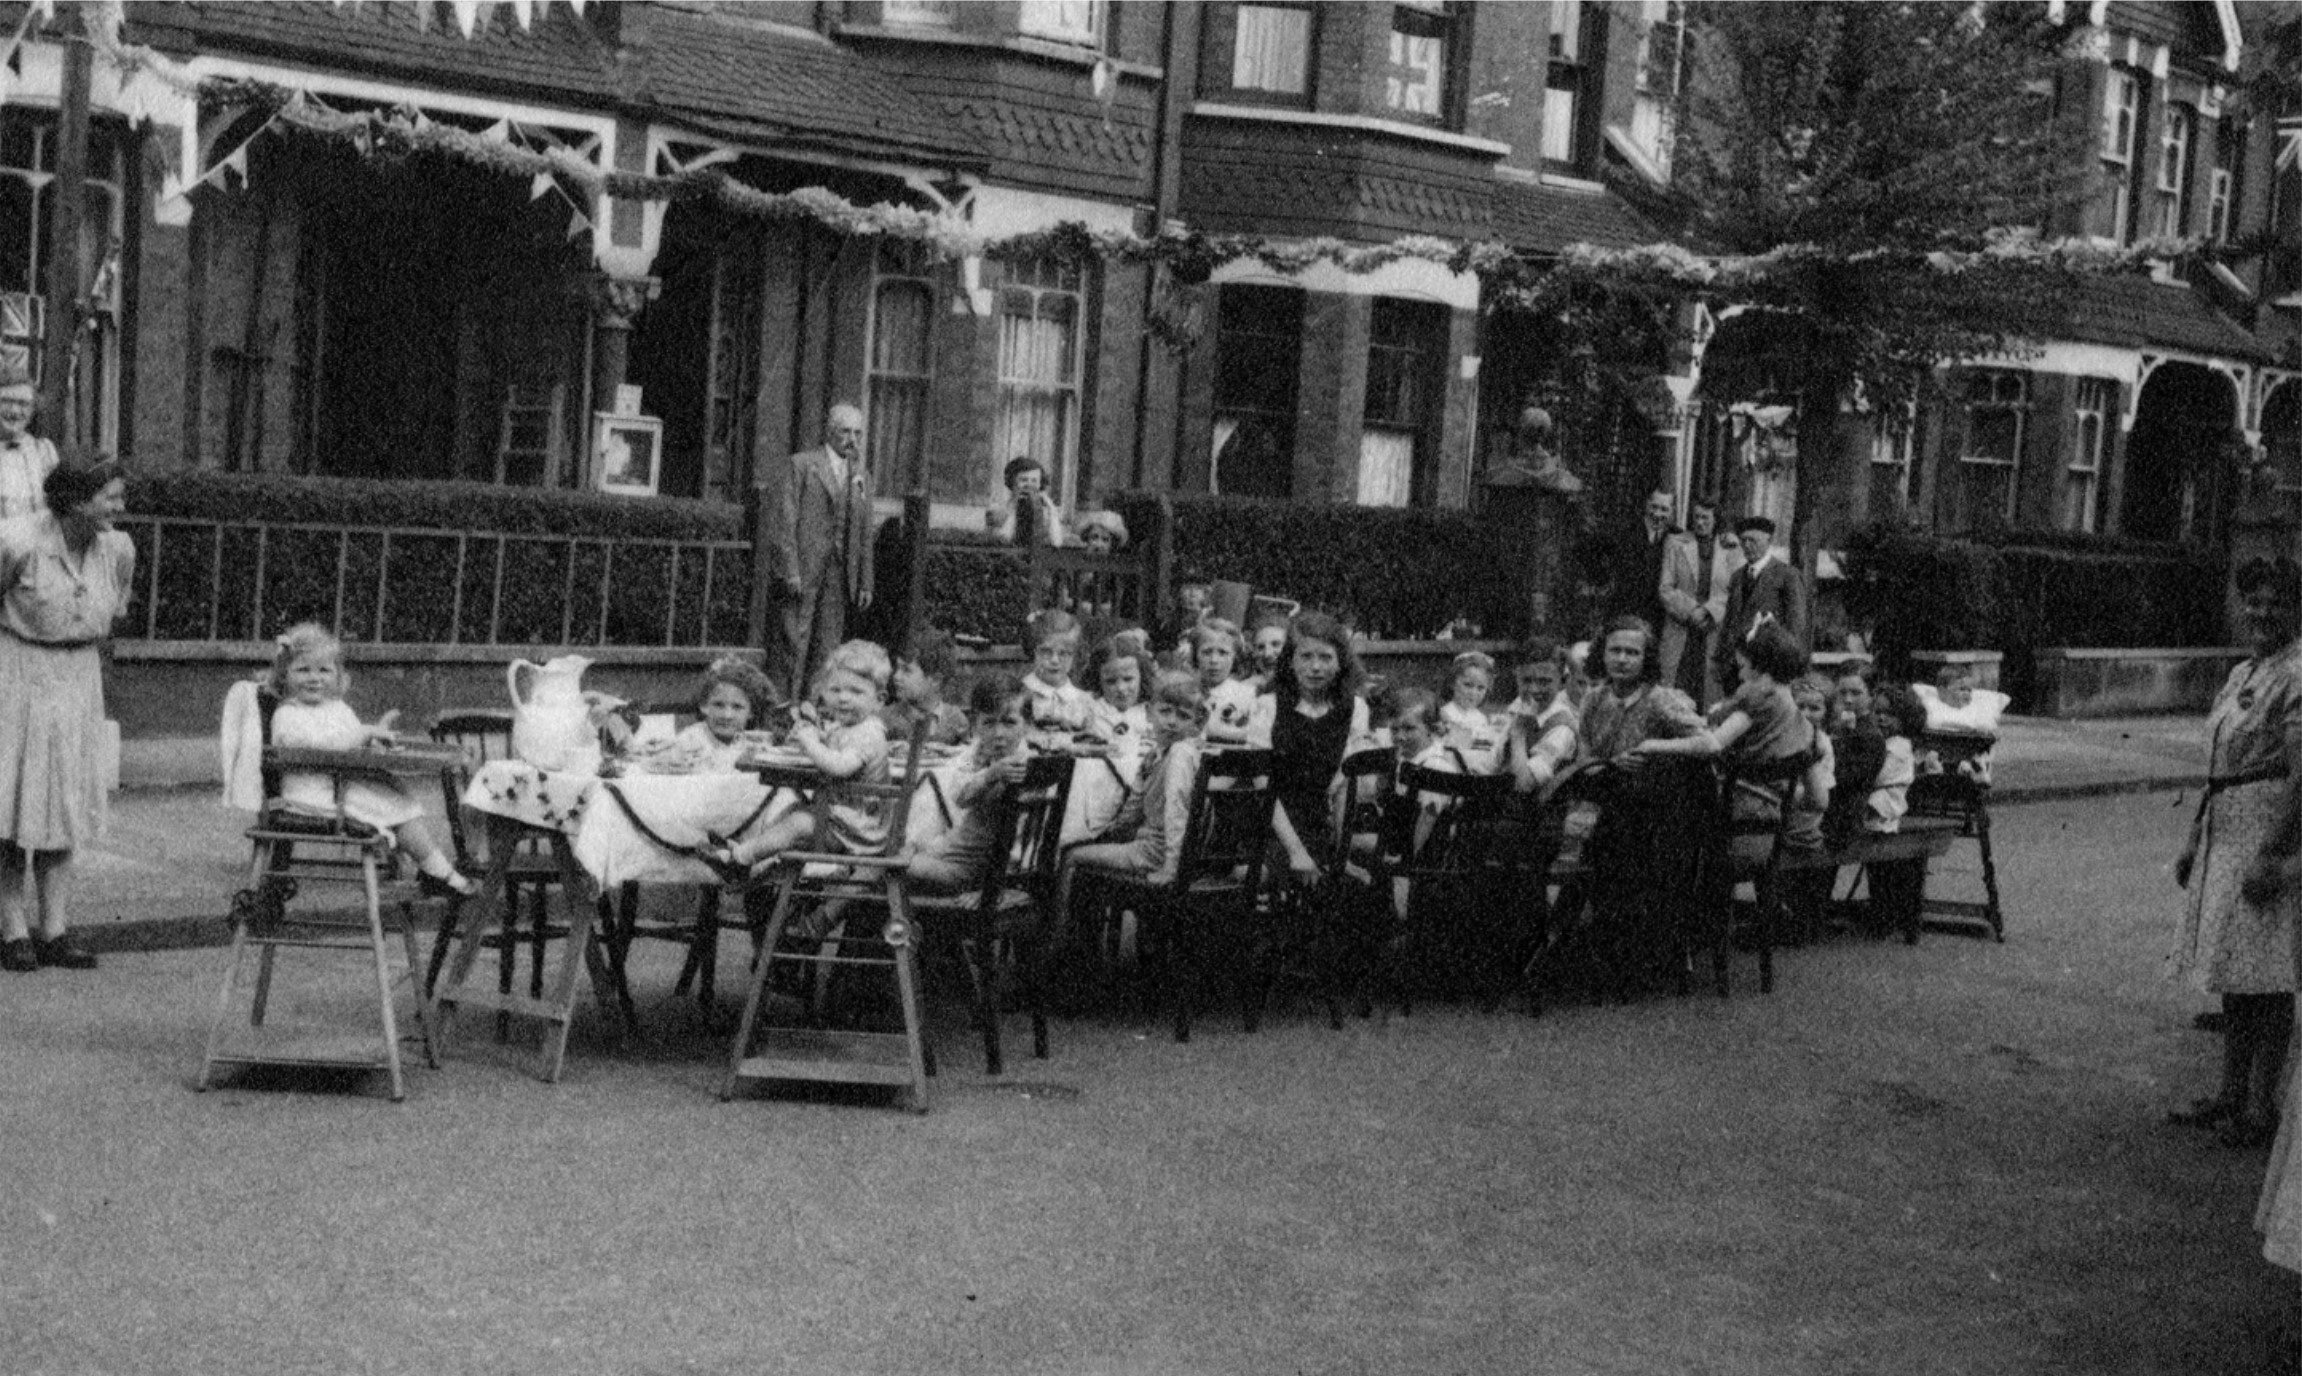 V J Party, Braemar Avenue, Wimbledon Park, 1945